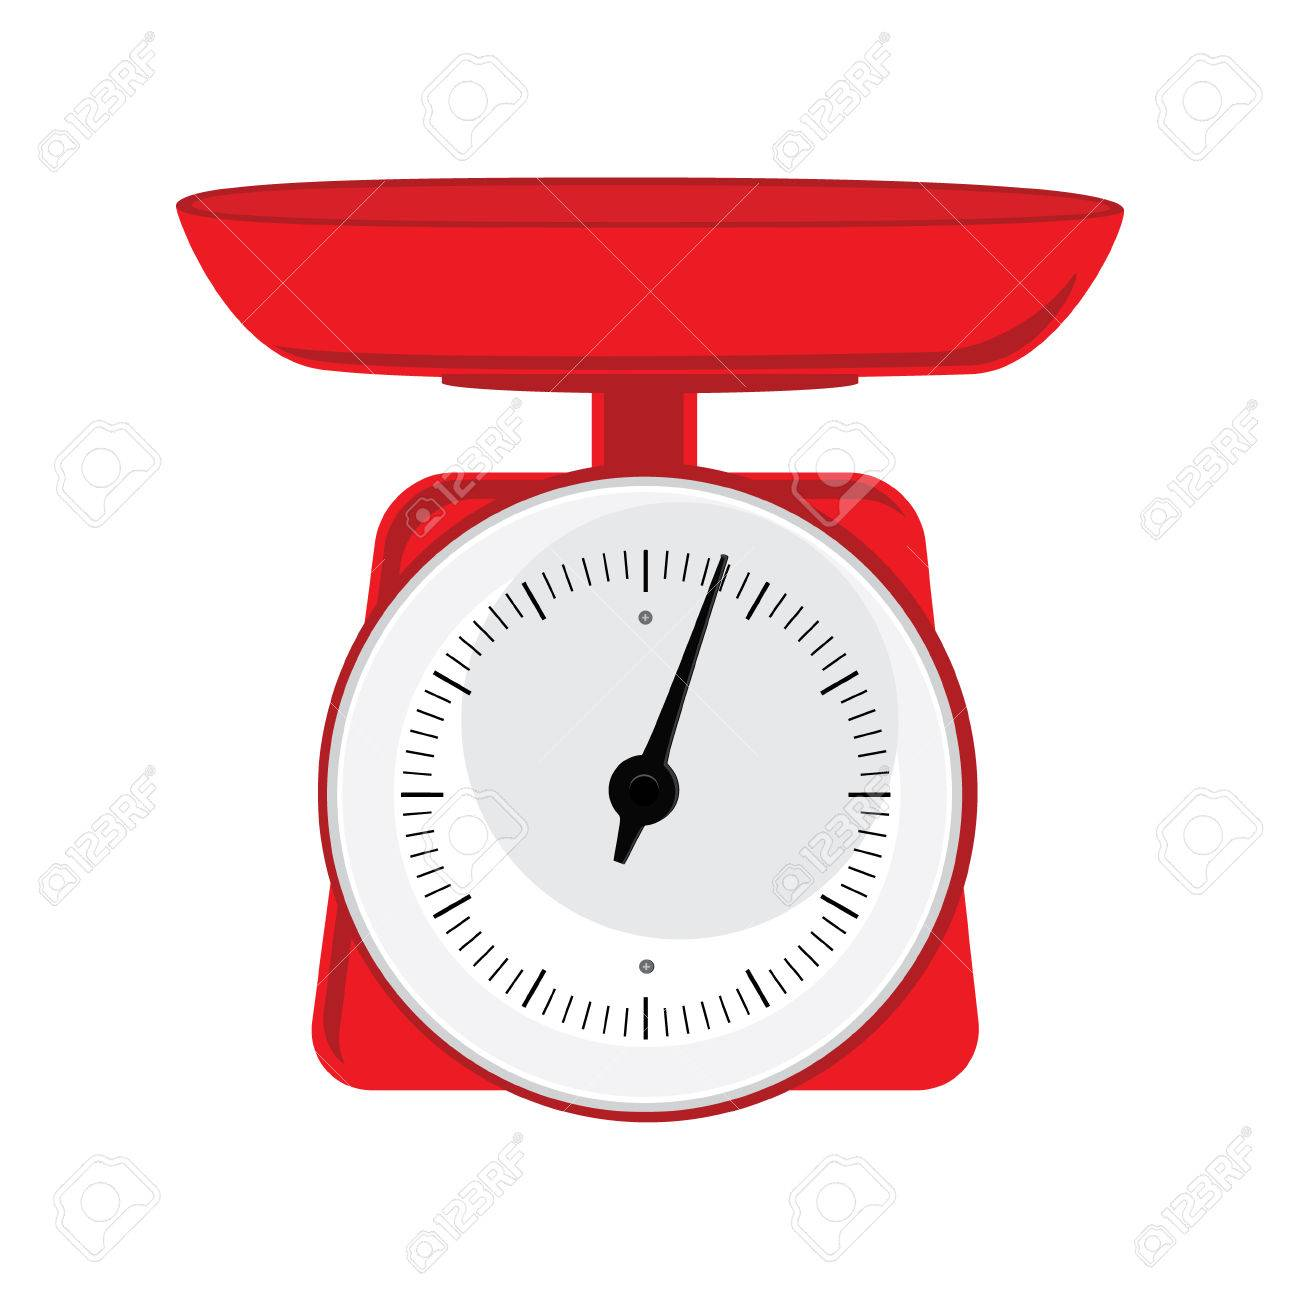 Vector illustration red weight scale on white background. Weighing scales with pan and dial for weight measurement. Kitchen appliances or measuring tool - 51459012